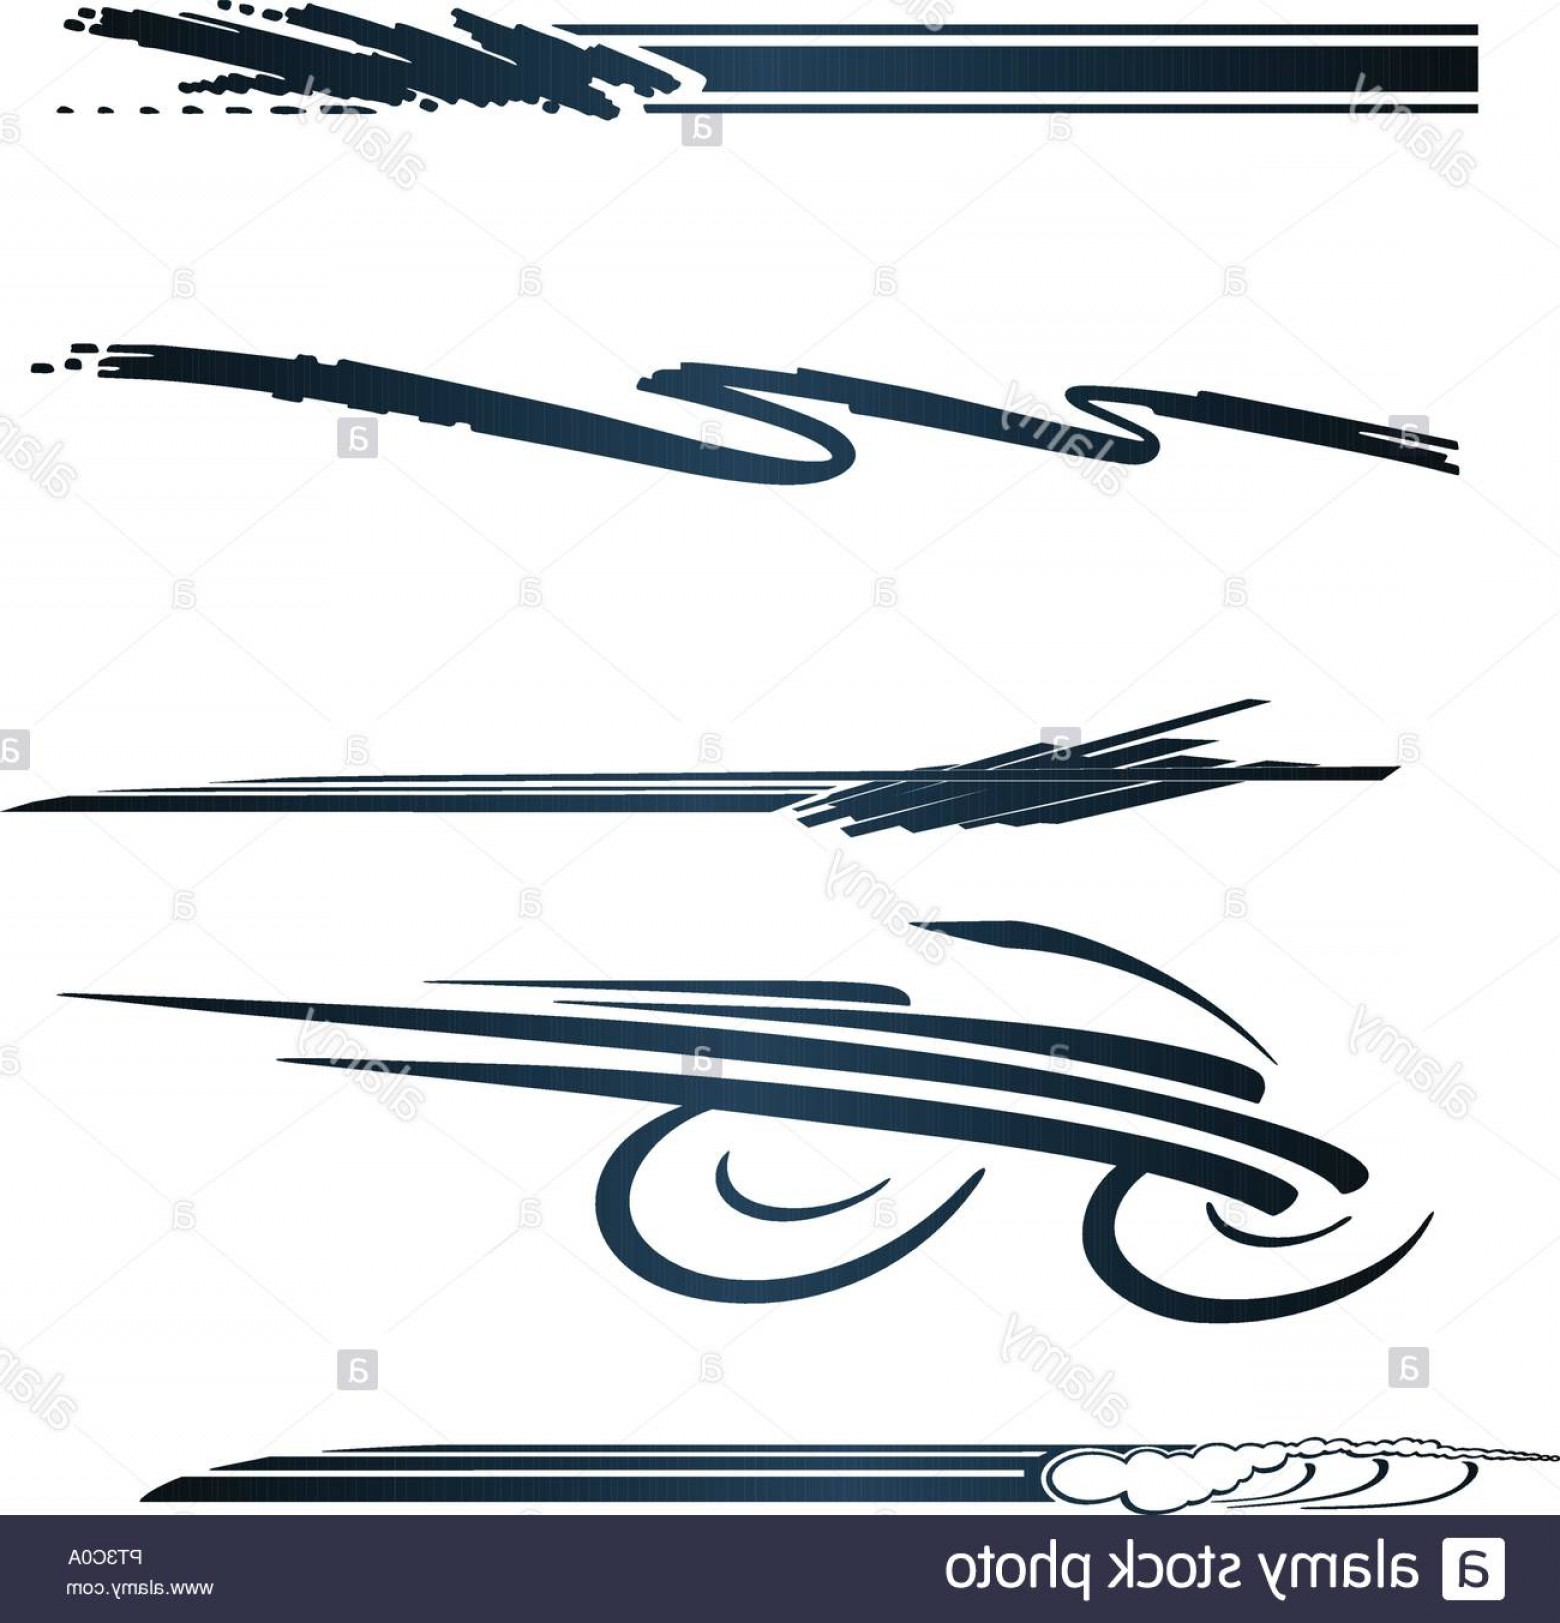 Black And White Vector Racing Graphics: Car Motorcycle Racing Vehicle Graphics Vinyls Decals Image